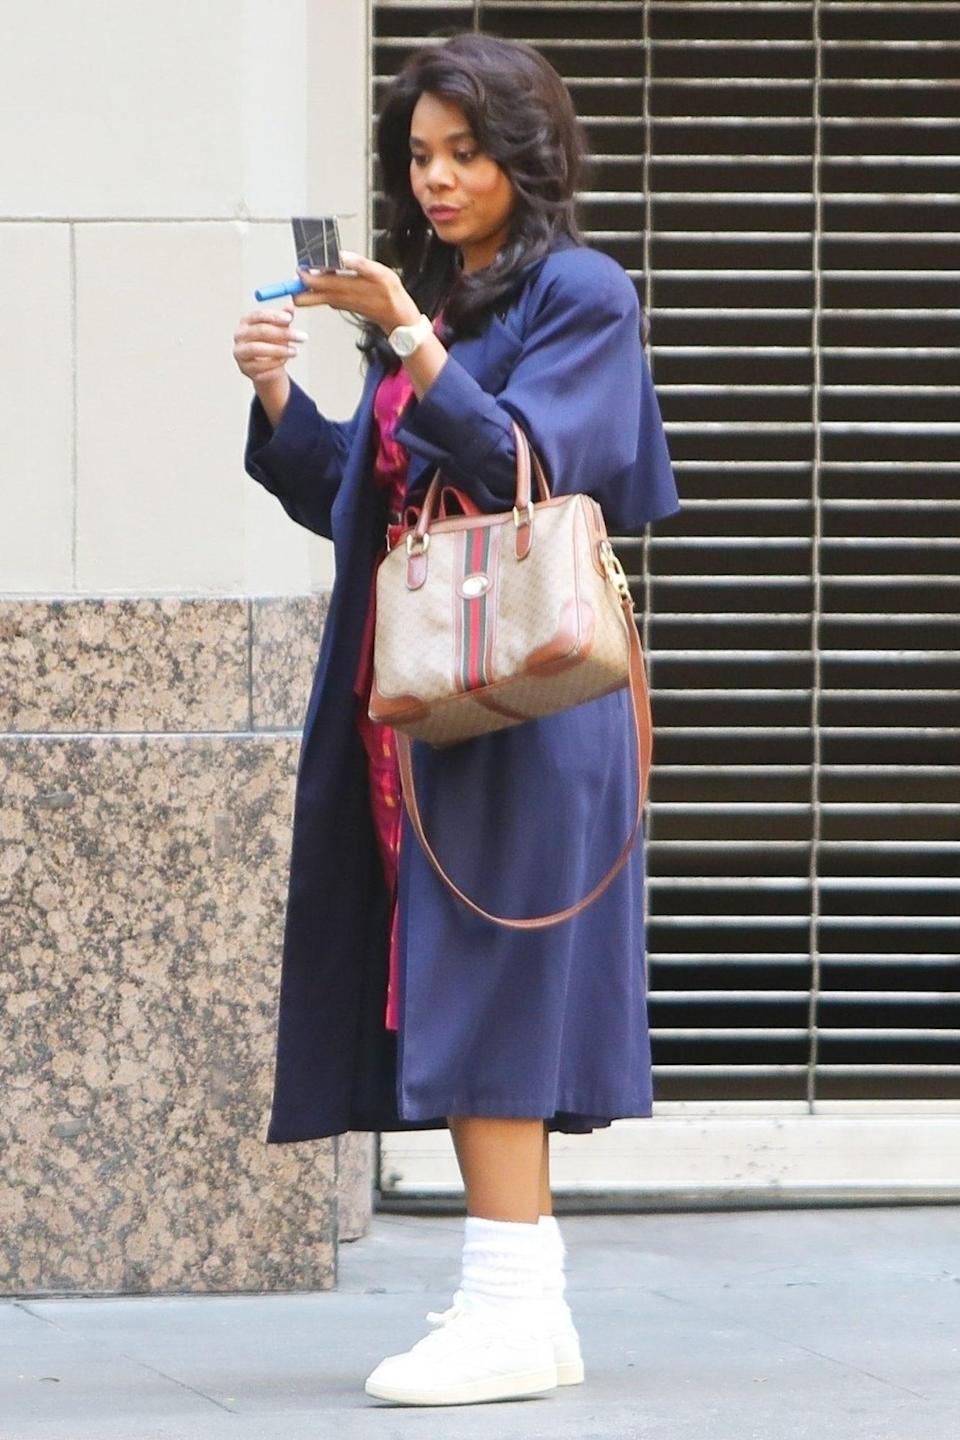 <p>Regina Hall films a scene for her series <em>Black Monday</em> on Wednesday in downtown L.A.</p>